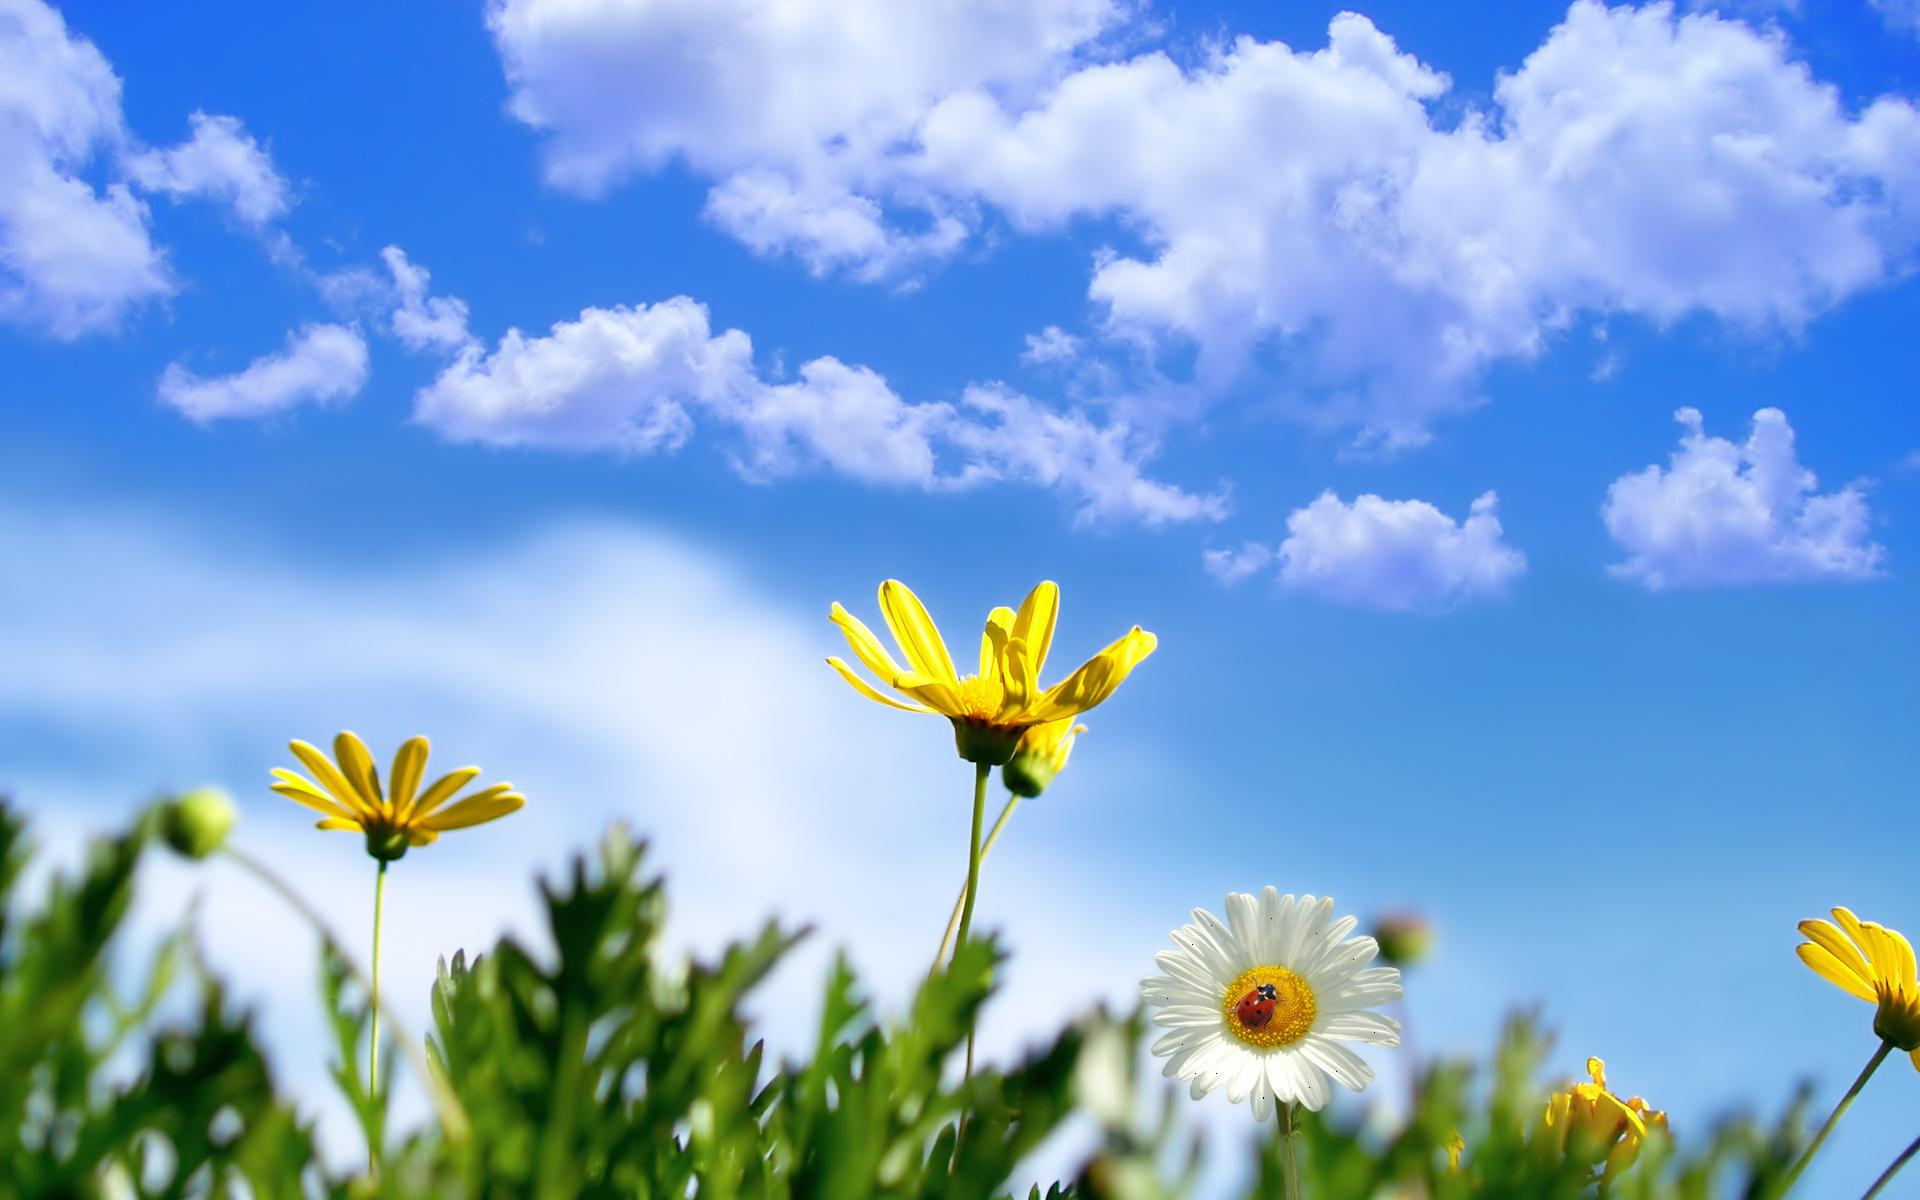 backgrounds wallpaper spring photo flower flowers gamesdesktop 1920x1200